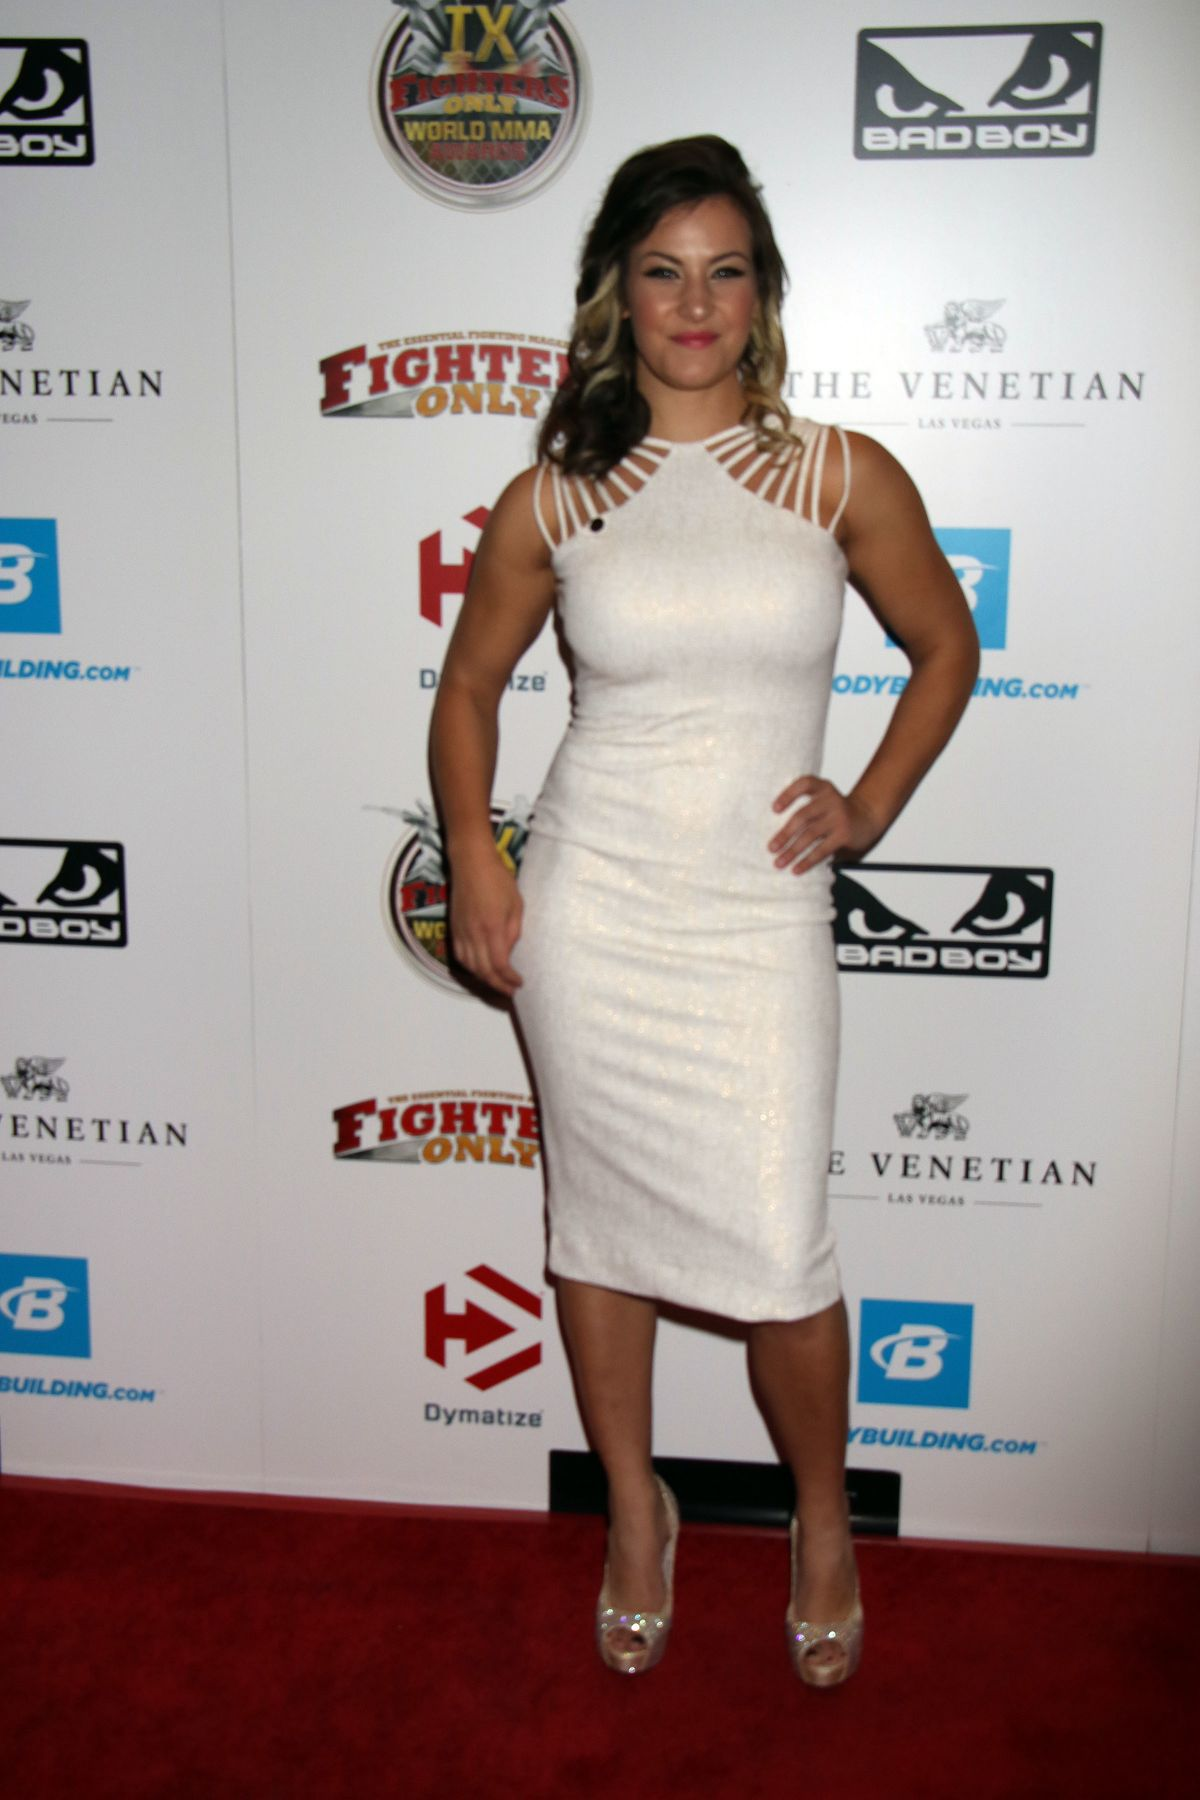 Forum on this topic: Archery, miesha-tate-mixed-martial-arts/